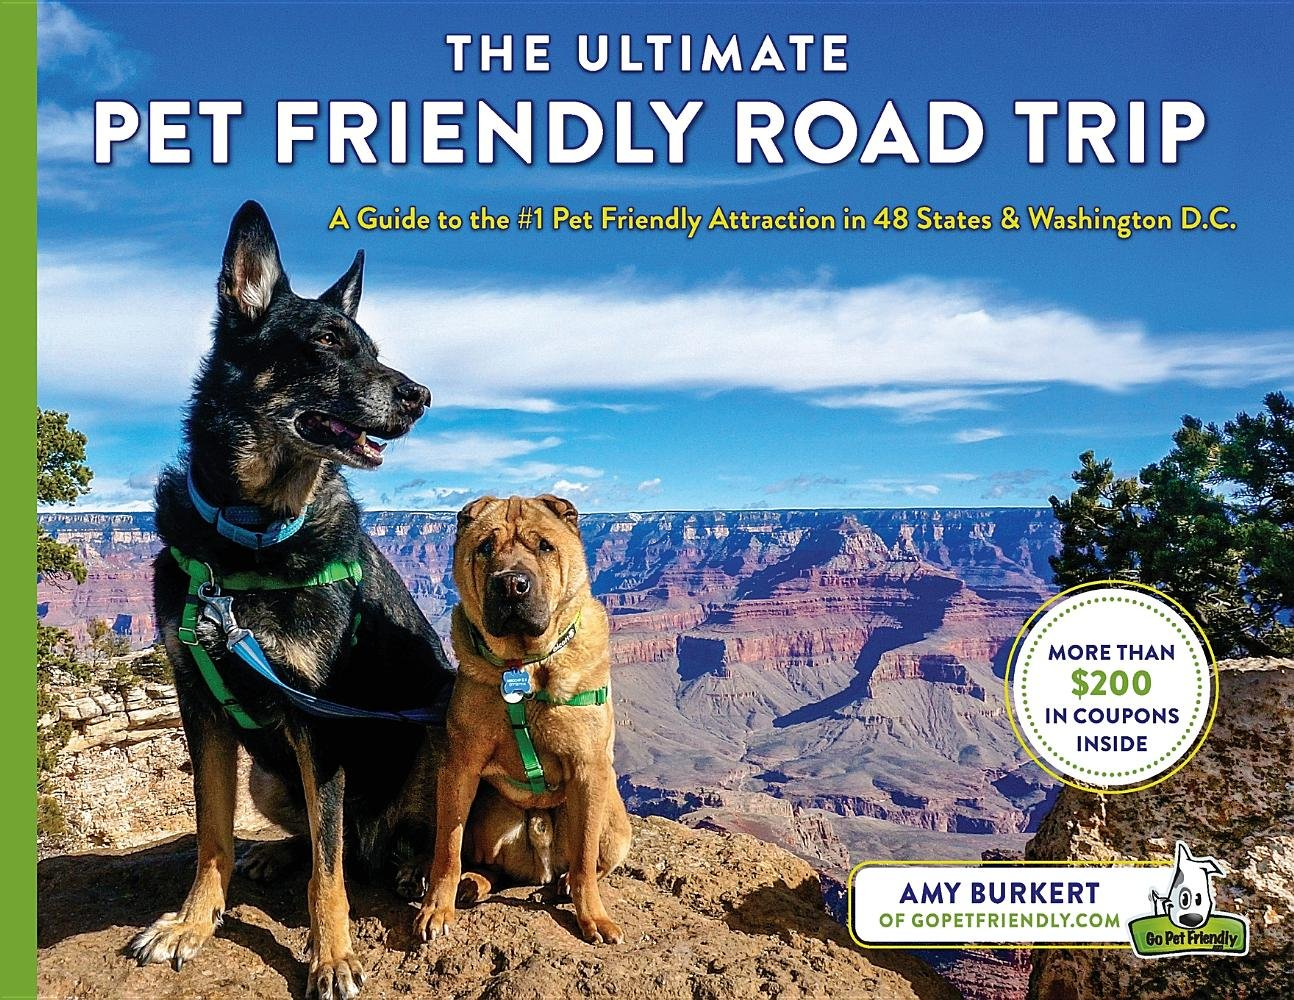 The Ultimate Pet Friendly Road Trip by Amy Burkert